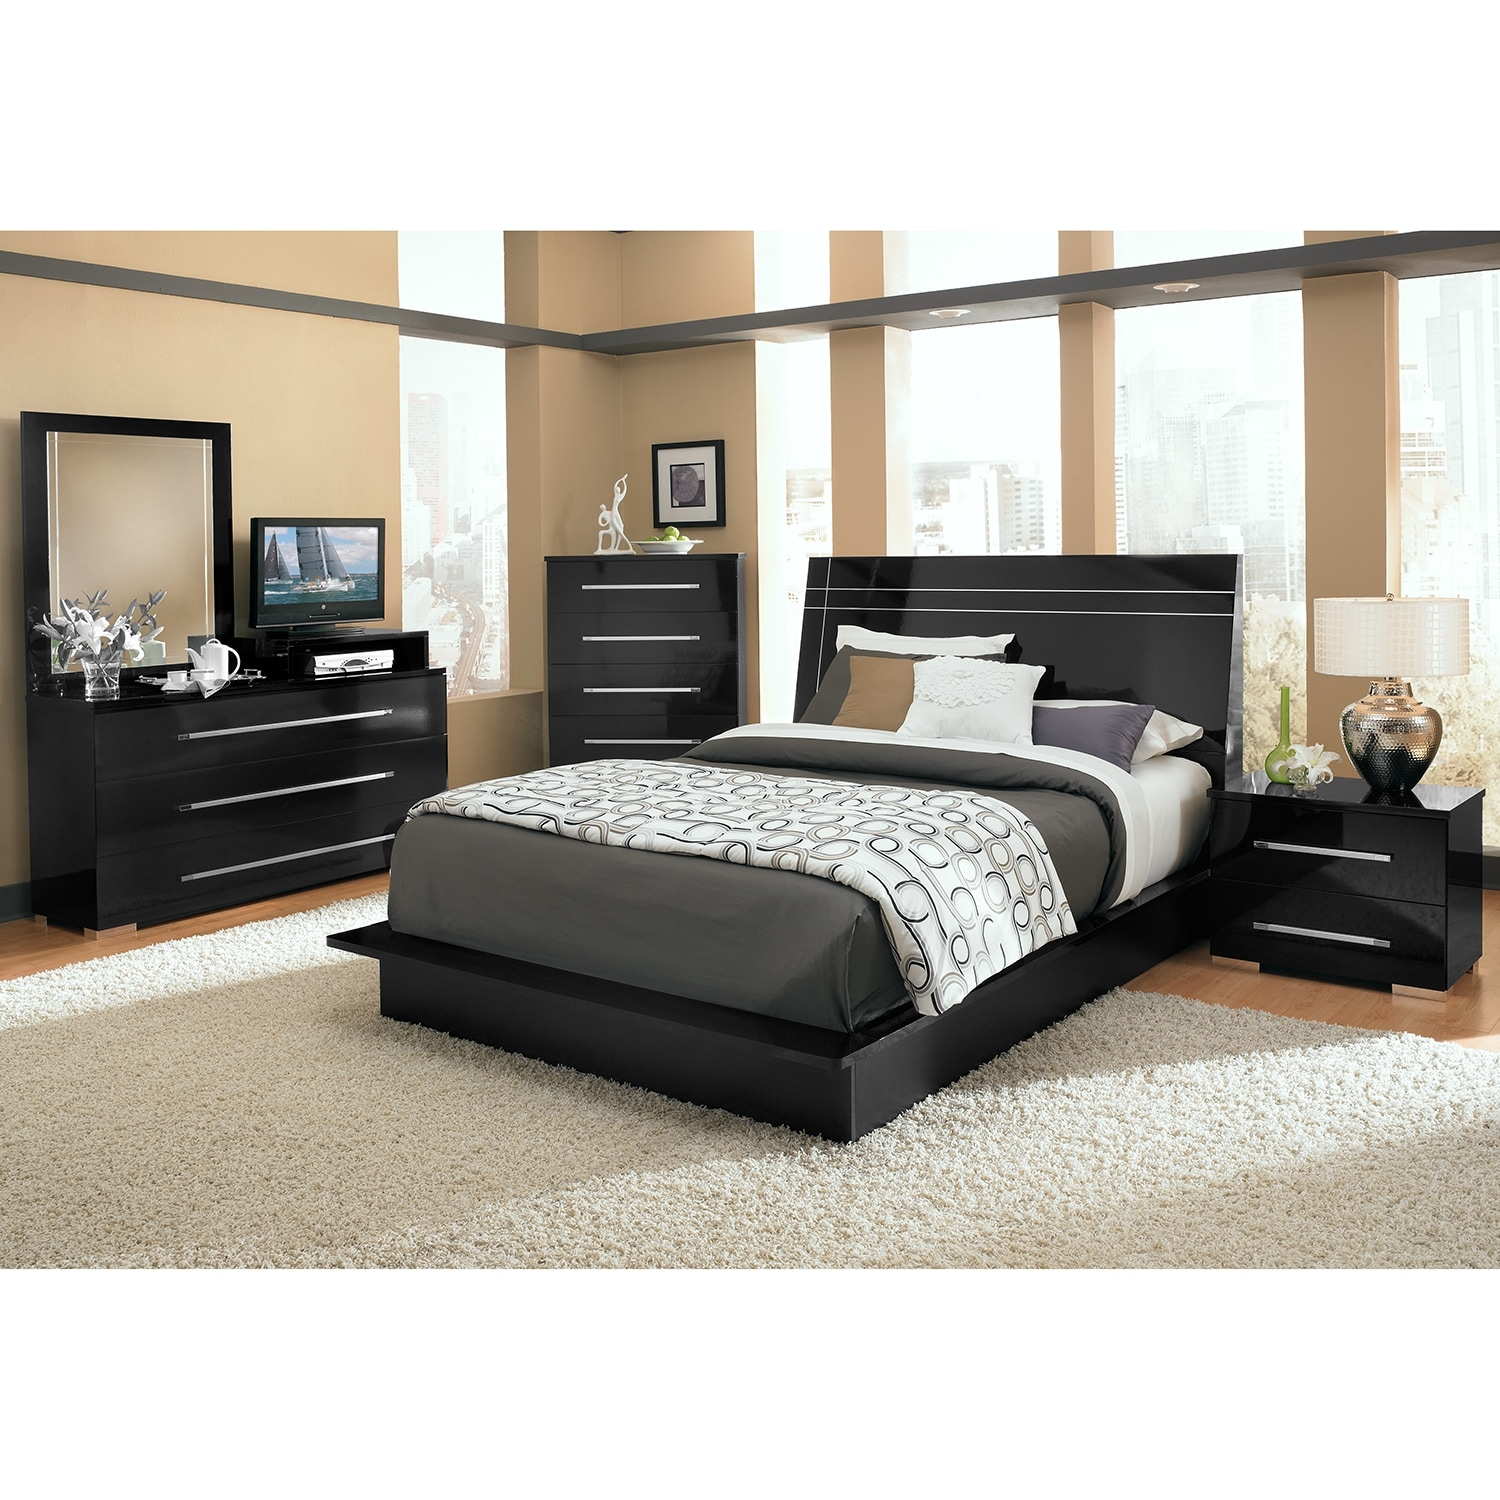 Dimora queen panel bed black american signature furniture for Best bedroom furniture